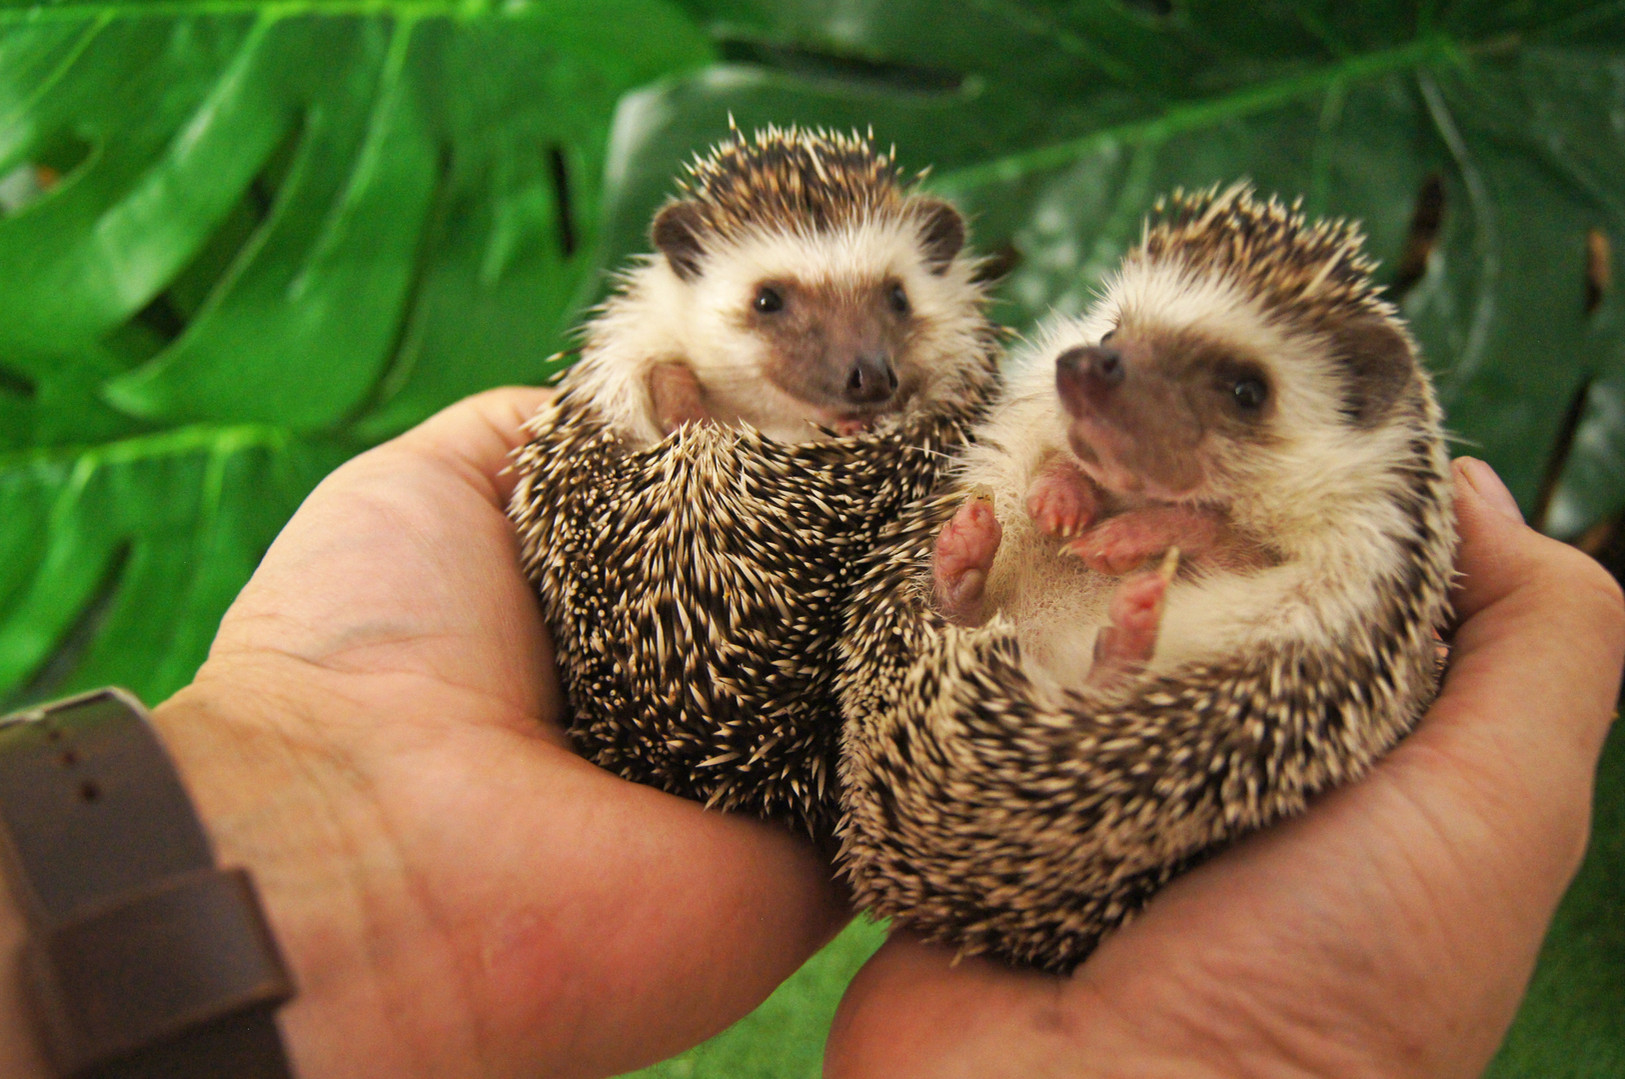 Tiggy and Winkle the African pygmy hedge